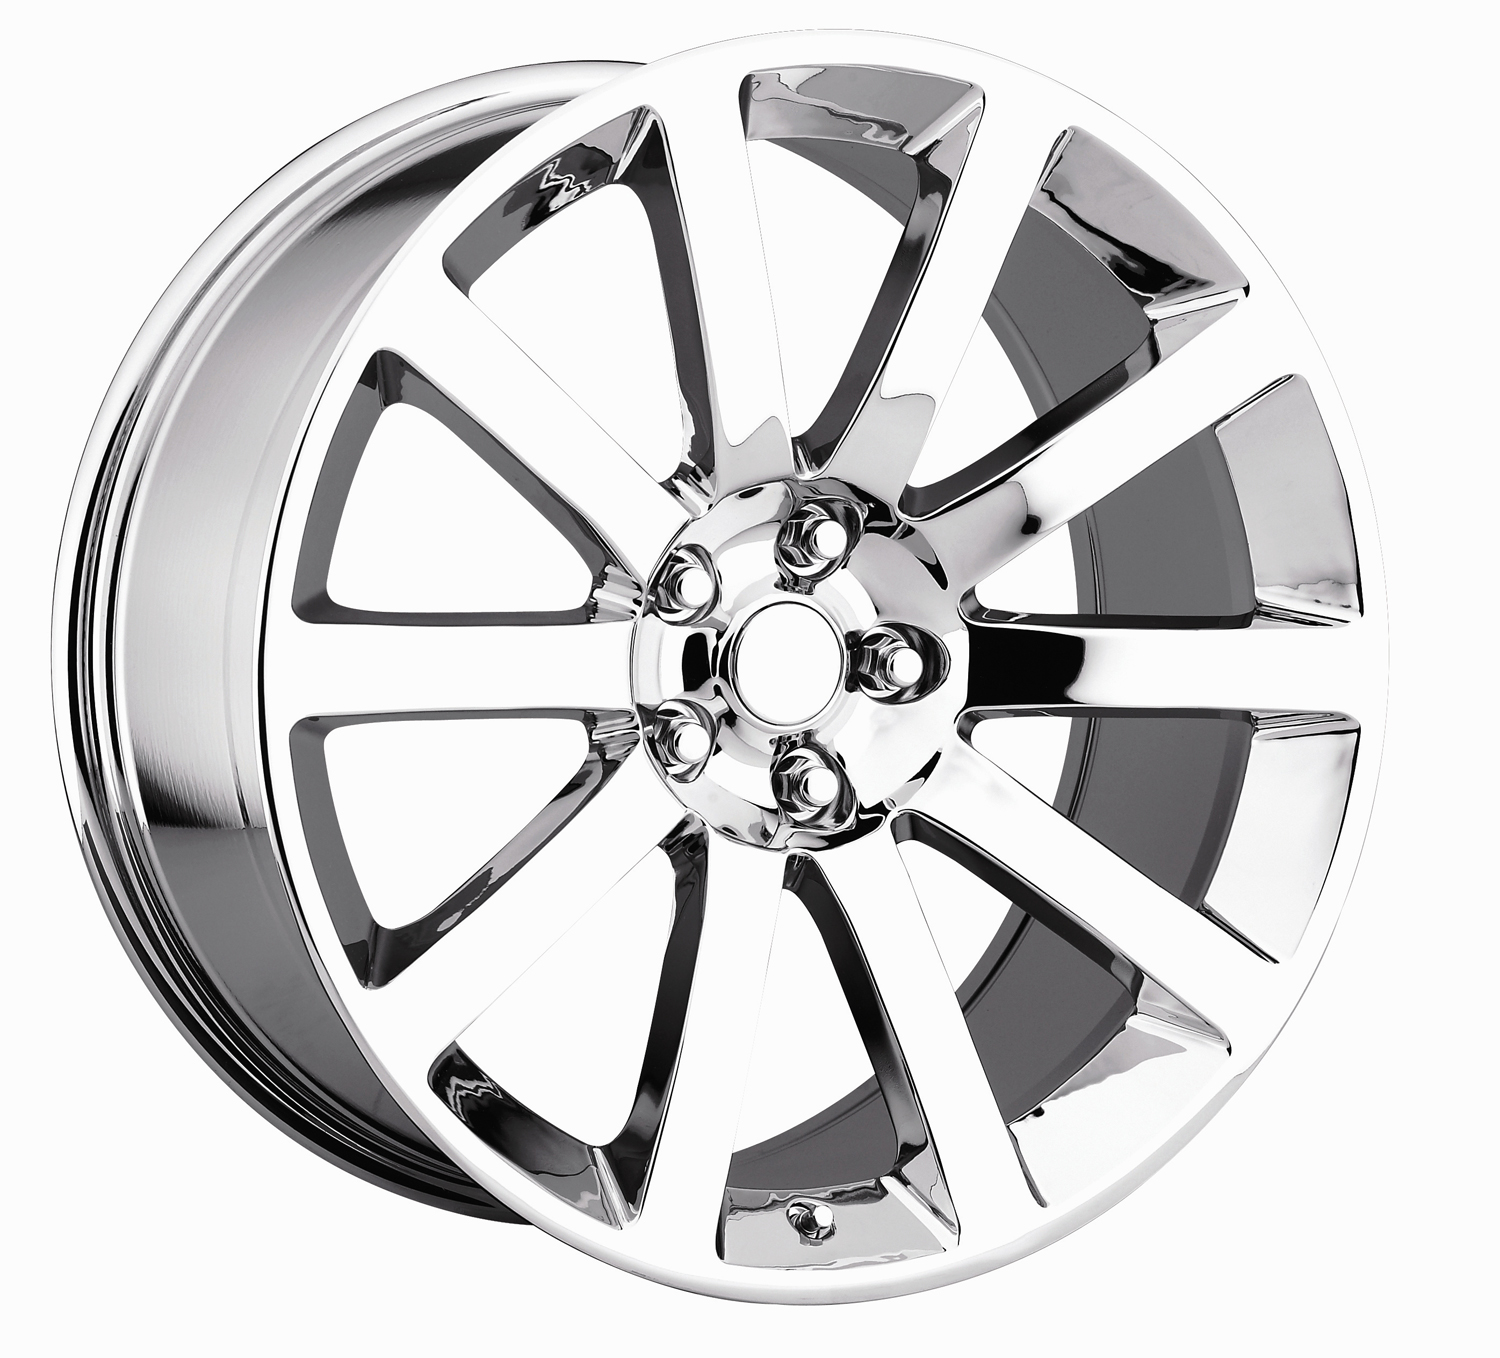 Chrysler 300C 2005-2010 20x9 5x115 +18 - SRT8 Style Wheel - Chrome With Cap